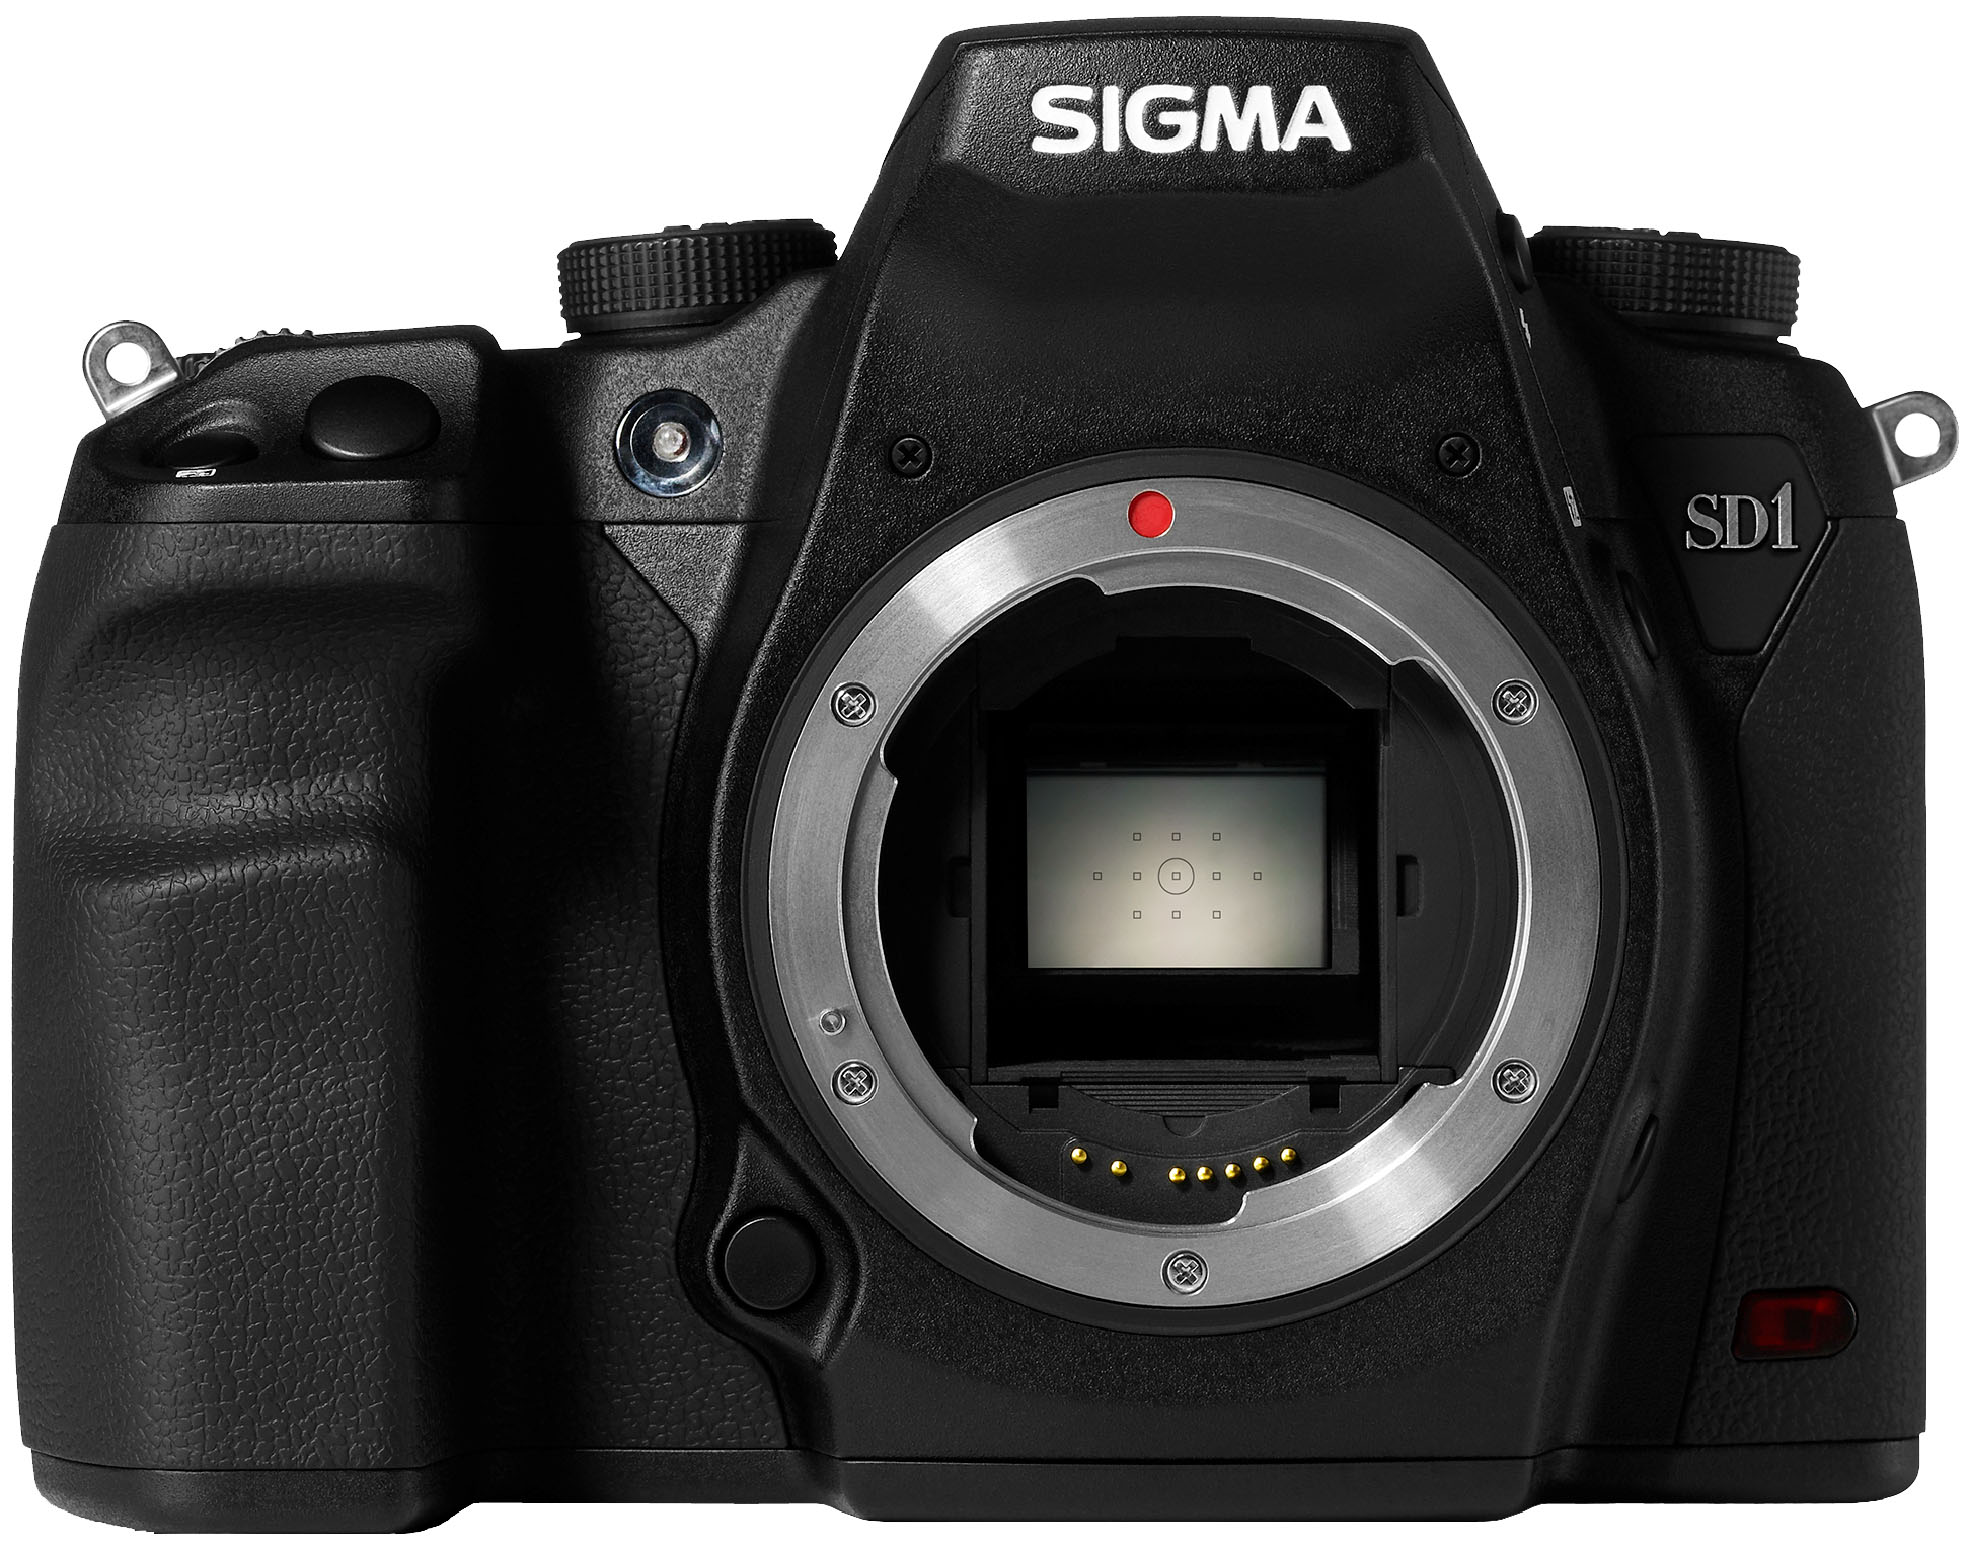 Sigma SD1 Review by The Luminous Landscape